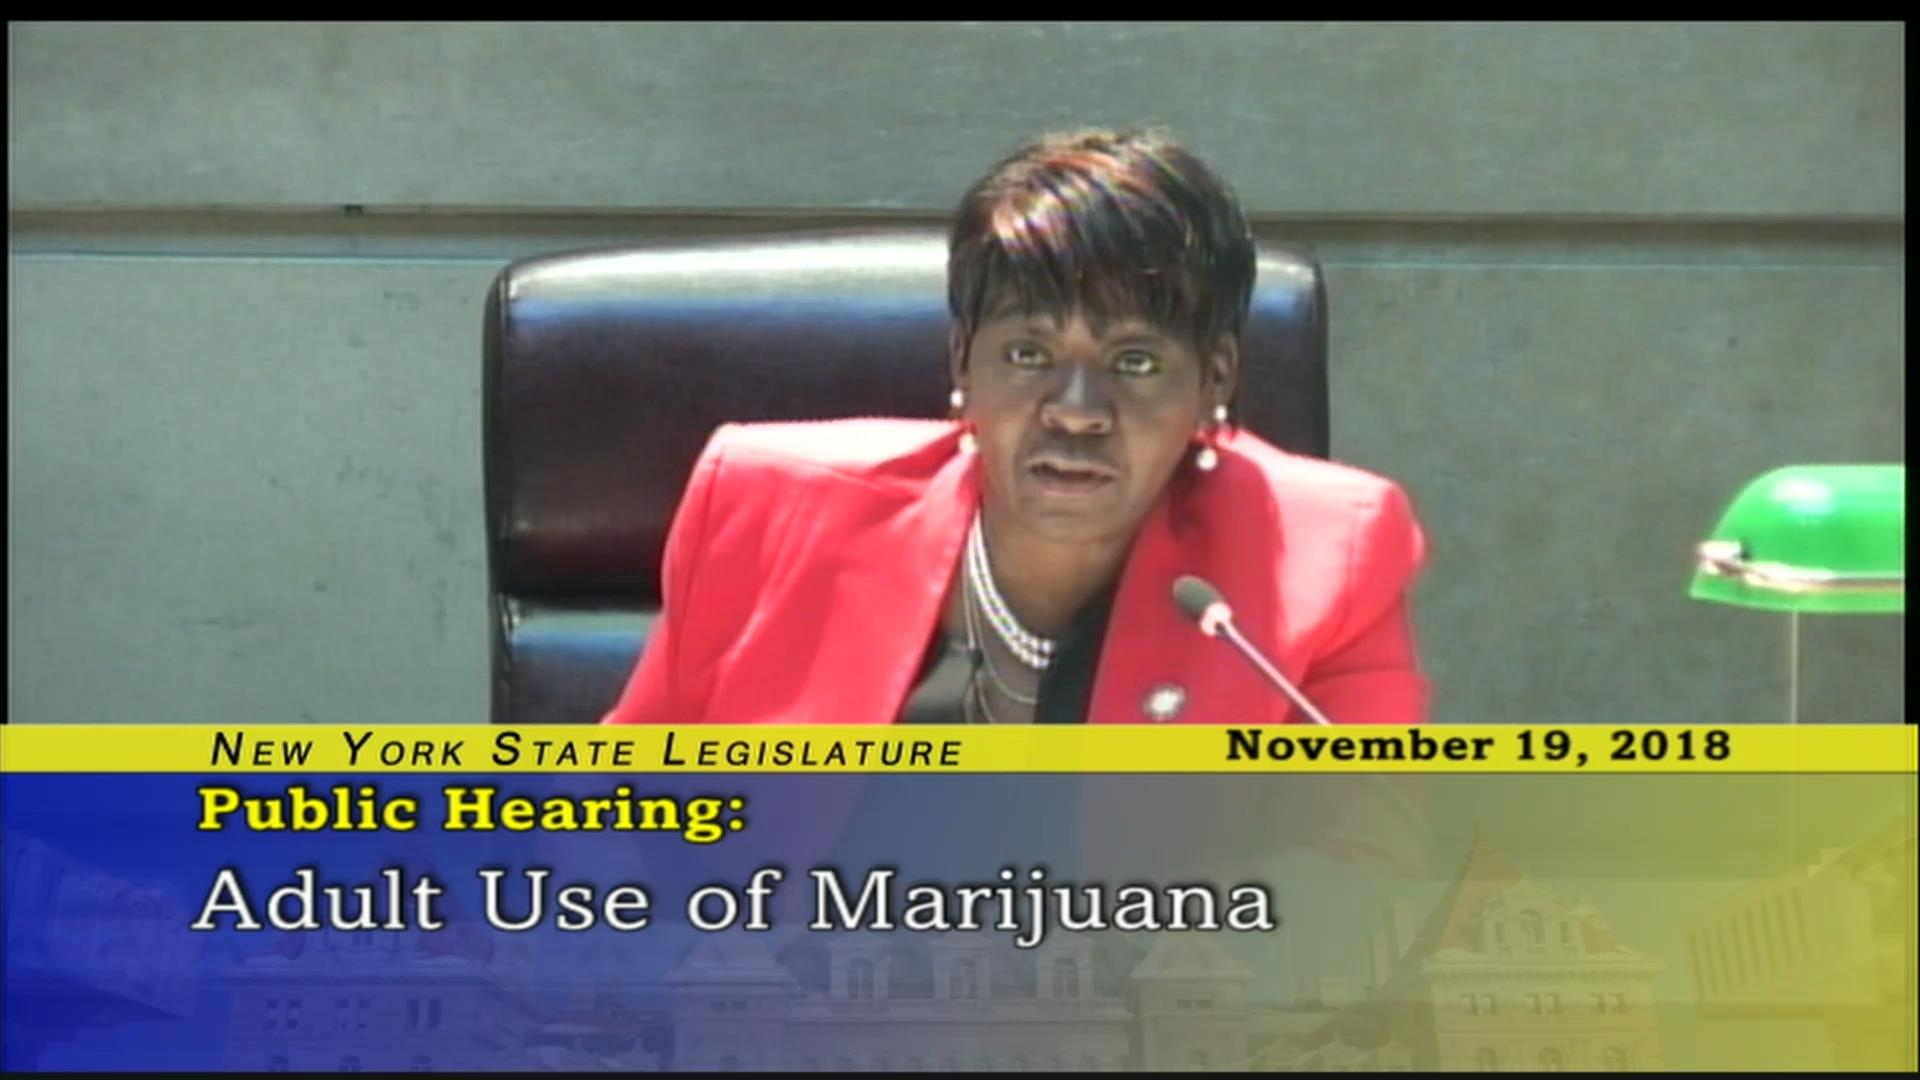 Peoples-Stokes Fights to Legalize Marijuana Use